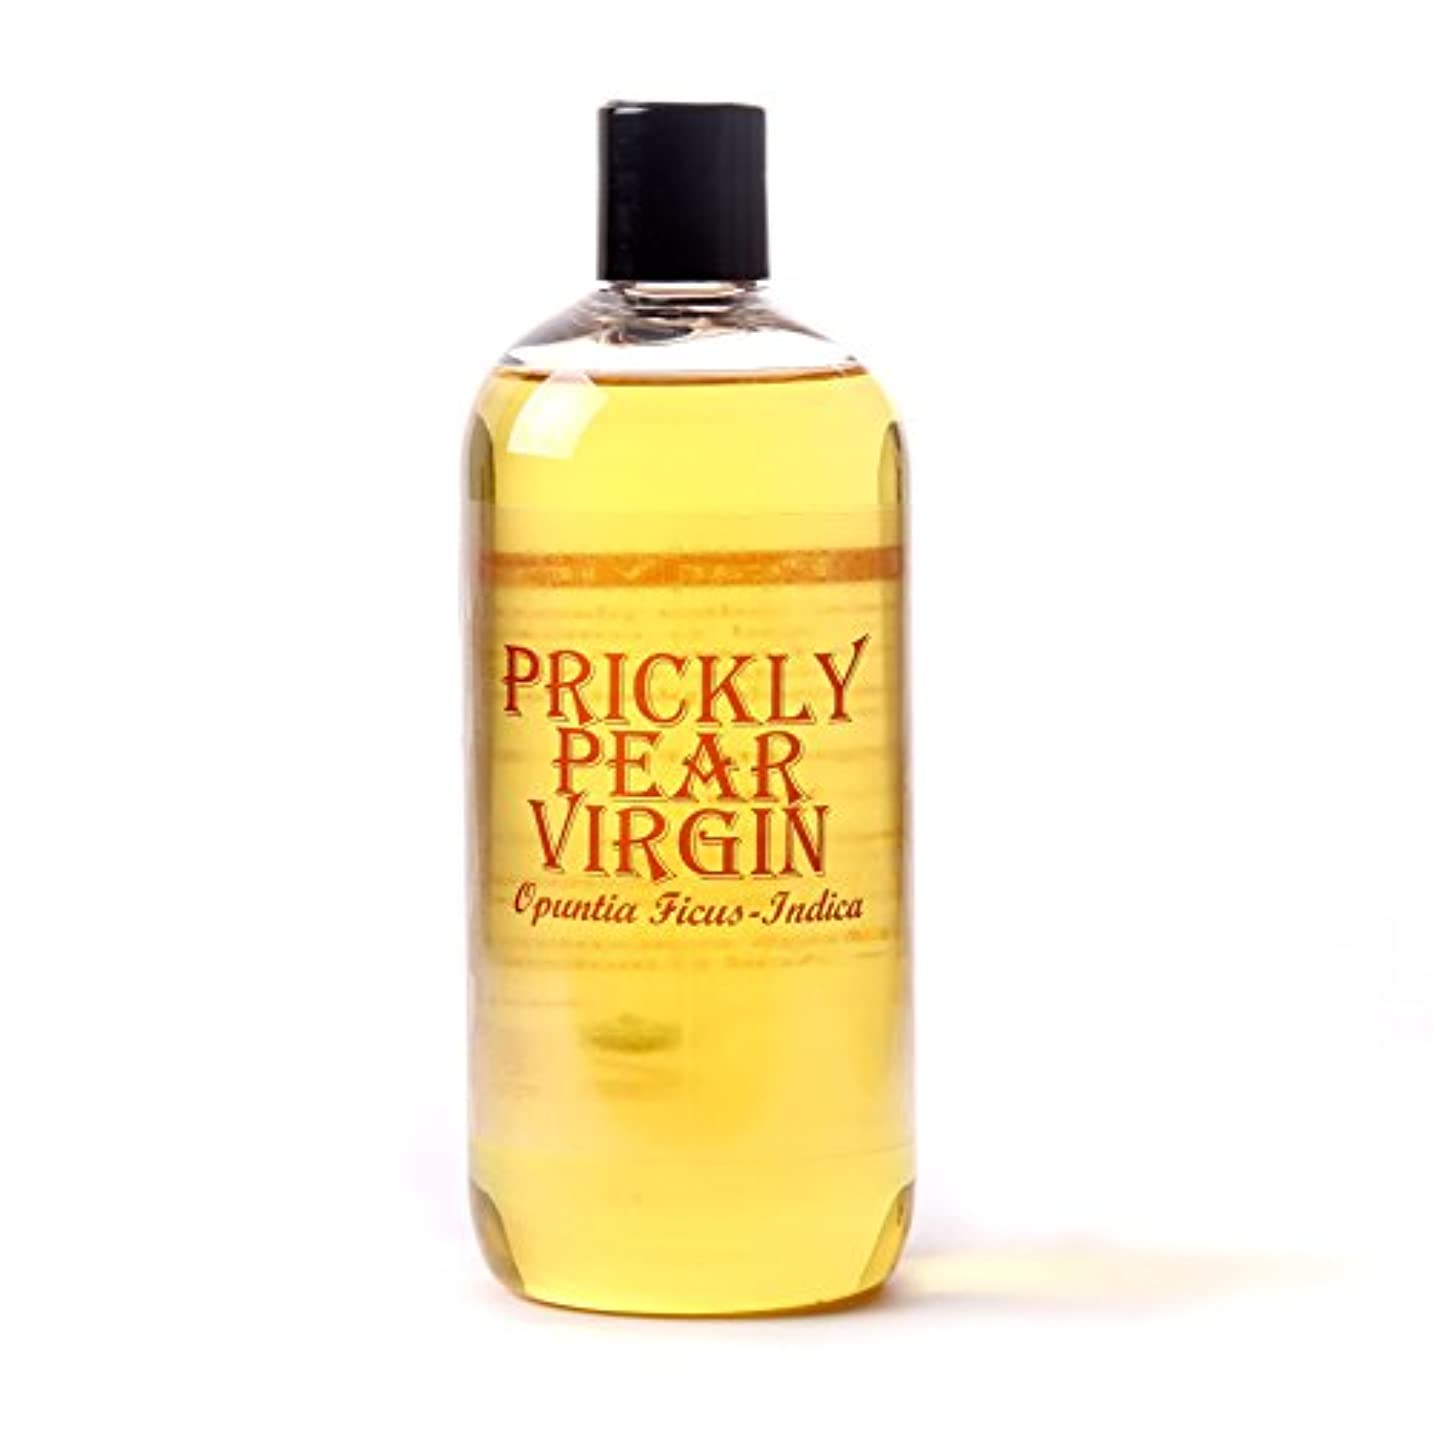 シットコム練る類似性Prickly Pear Virgin Carrier Oil - 100% Pure - 1 Litre